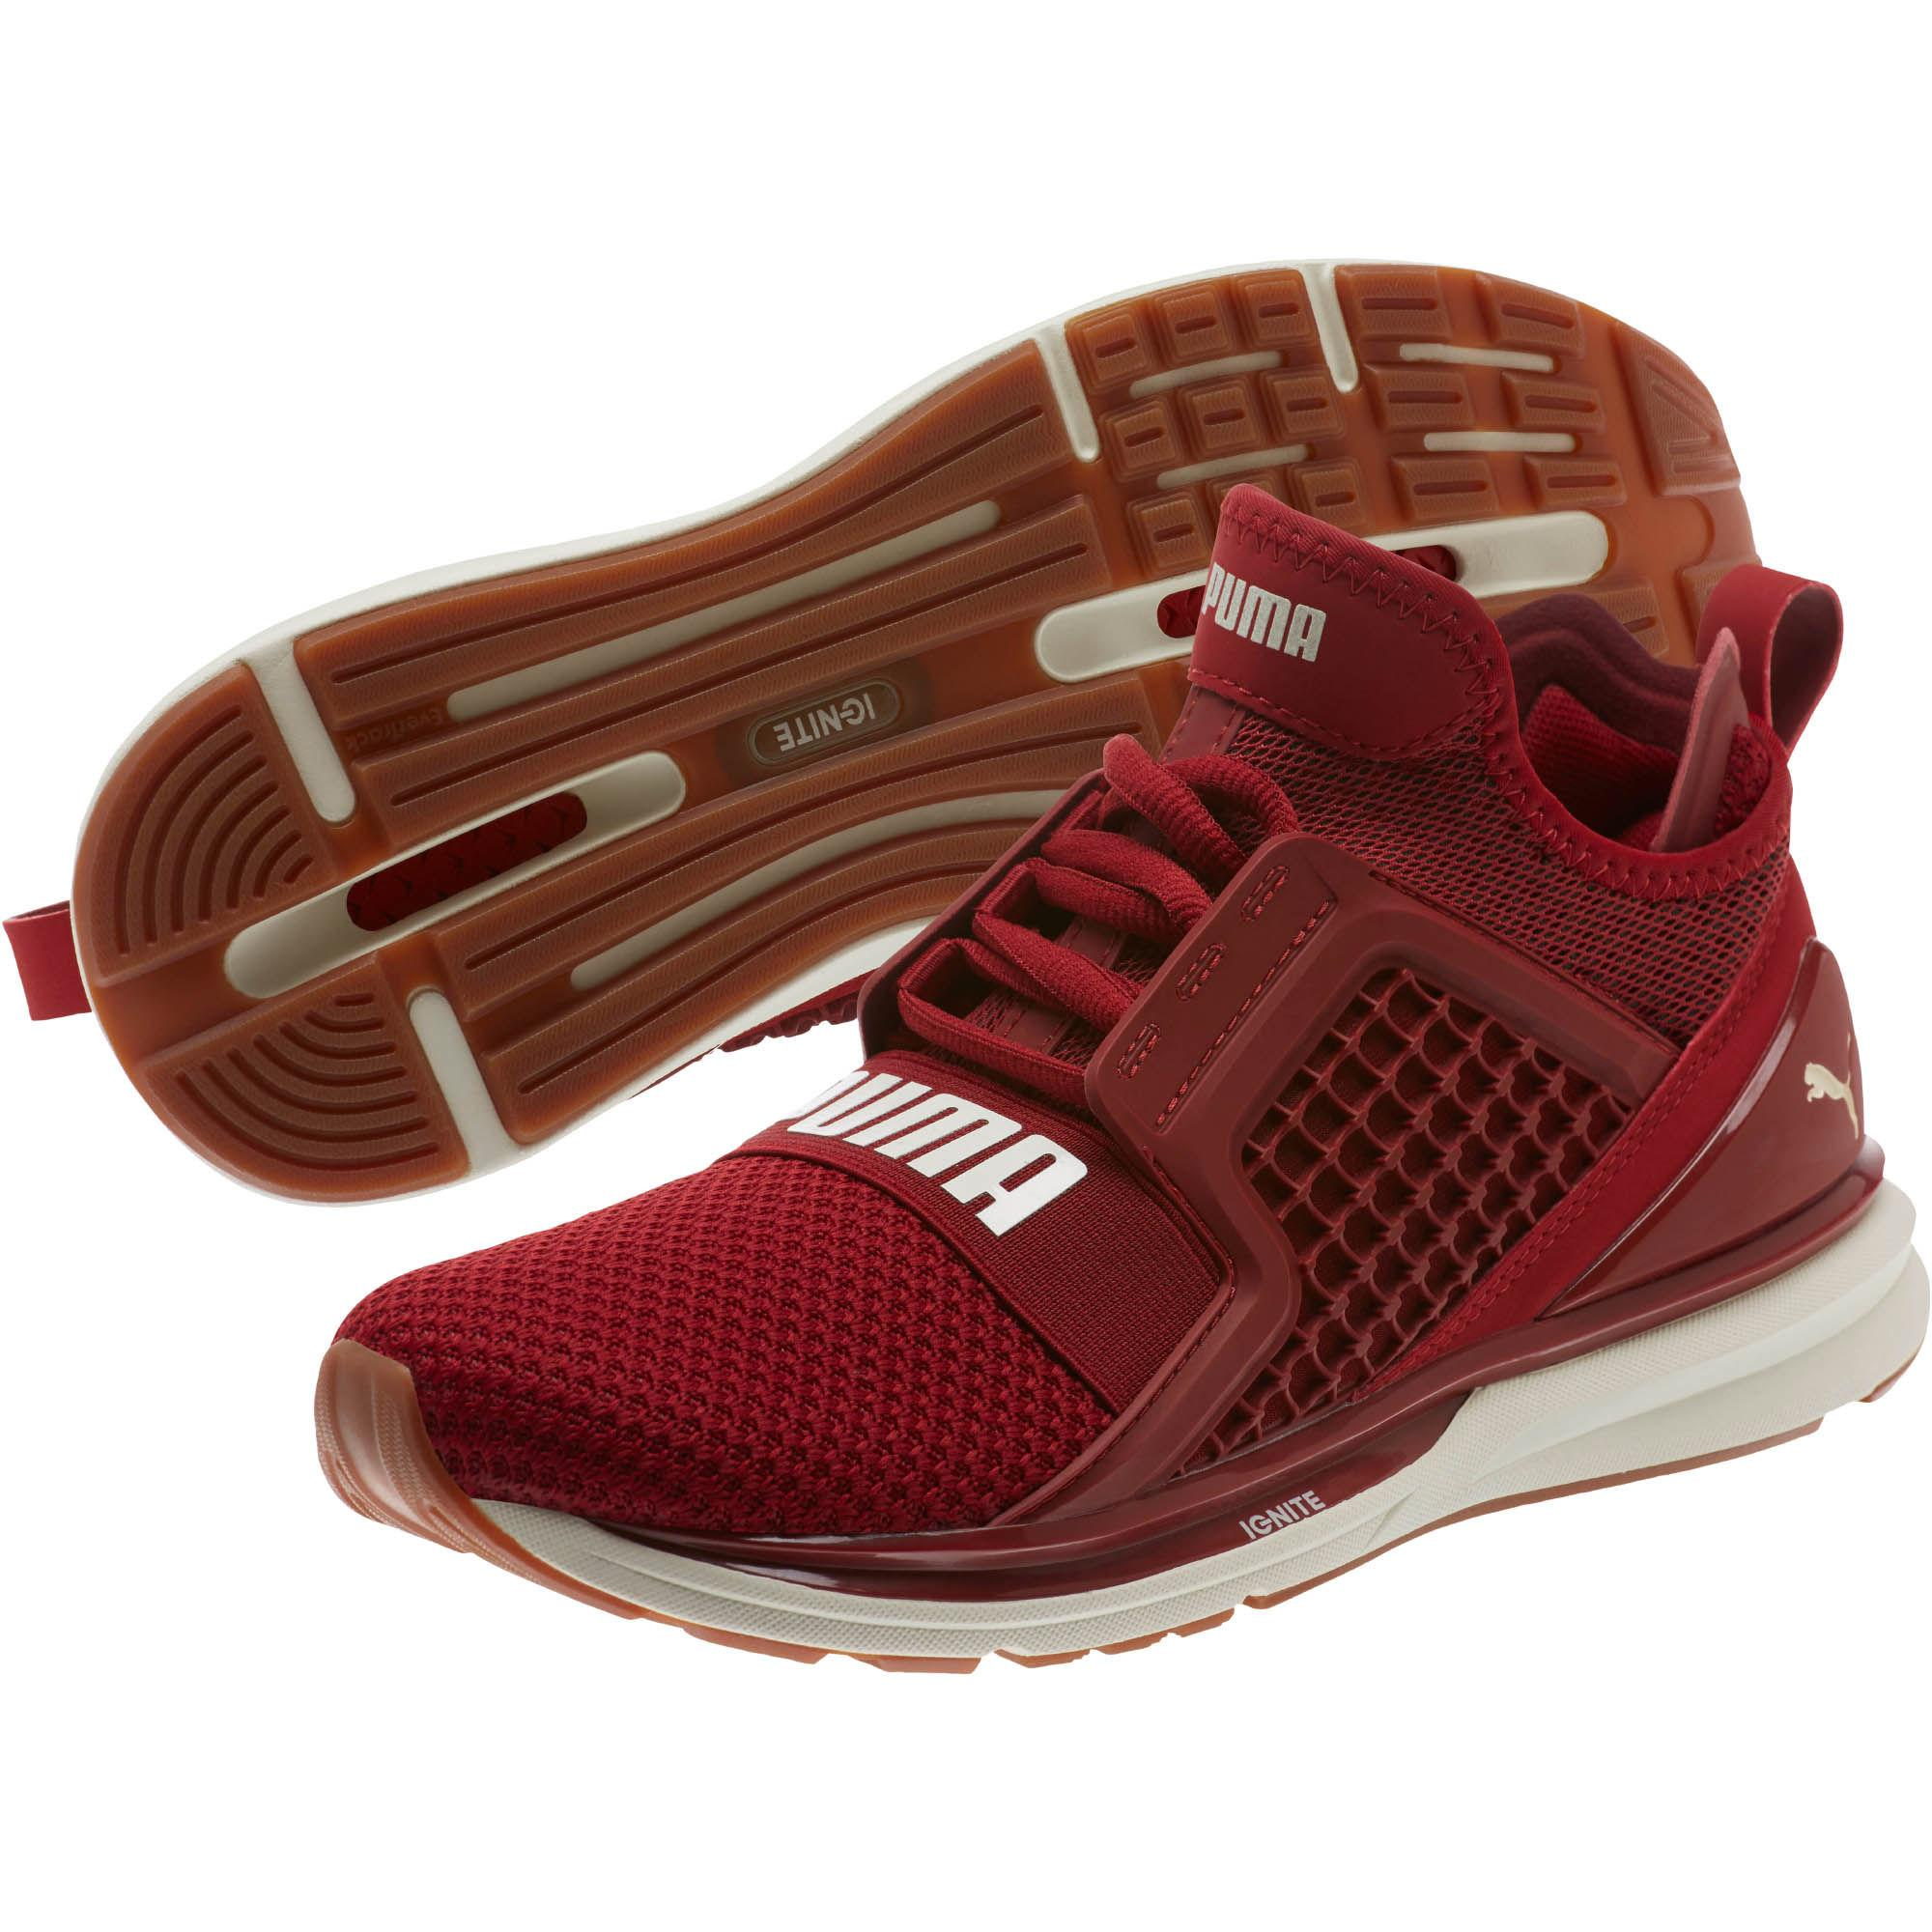 Lyst - PUMA Ignite Limitless Weave Women s Running Shoes in Red 49449066d